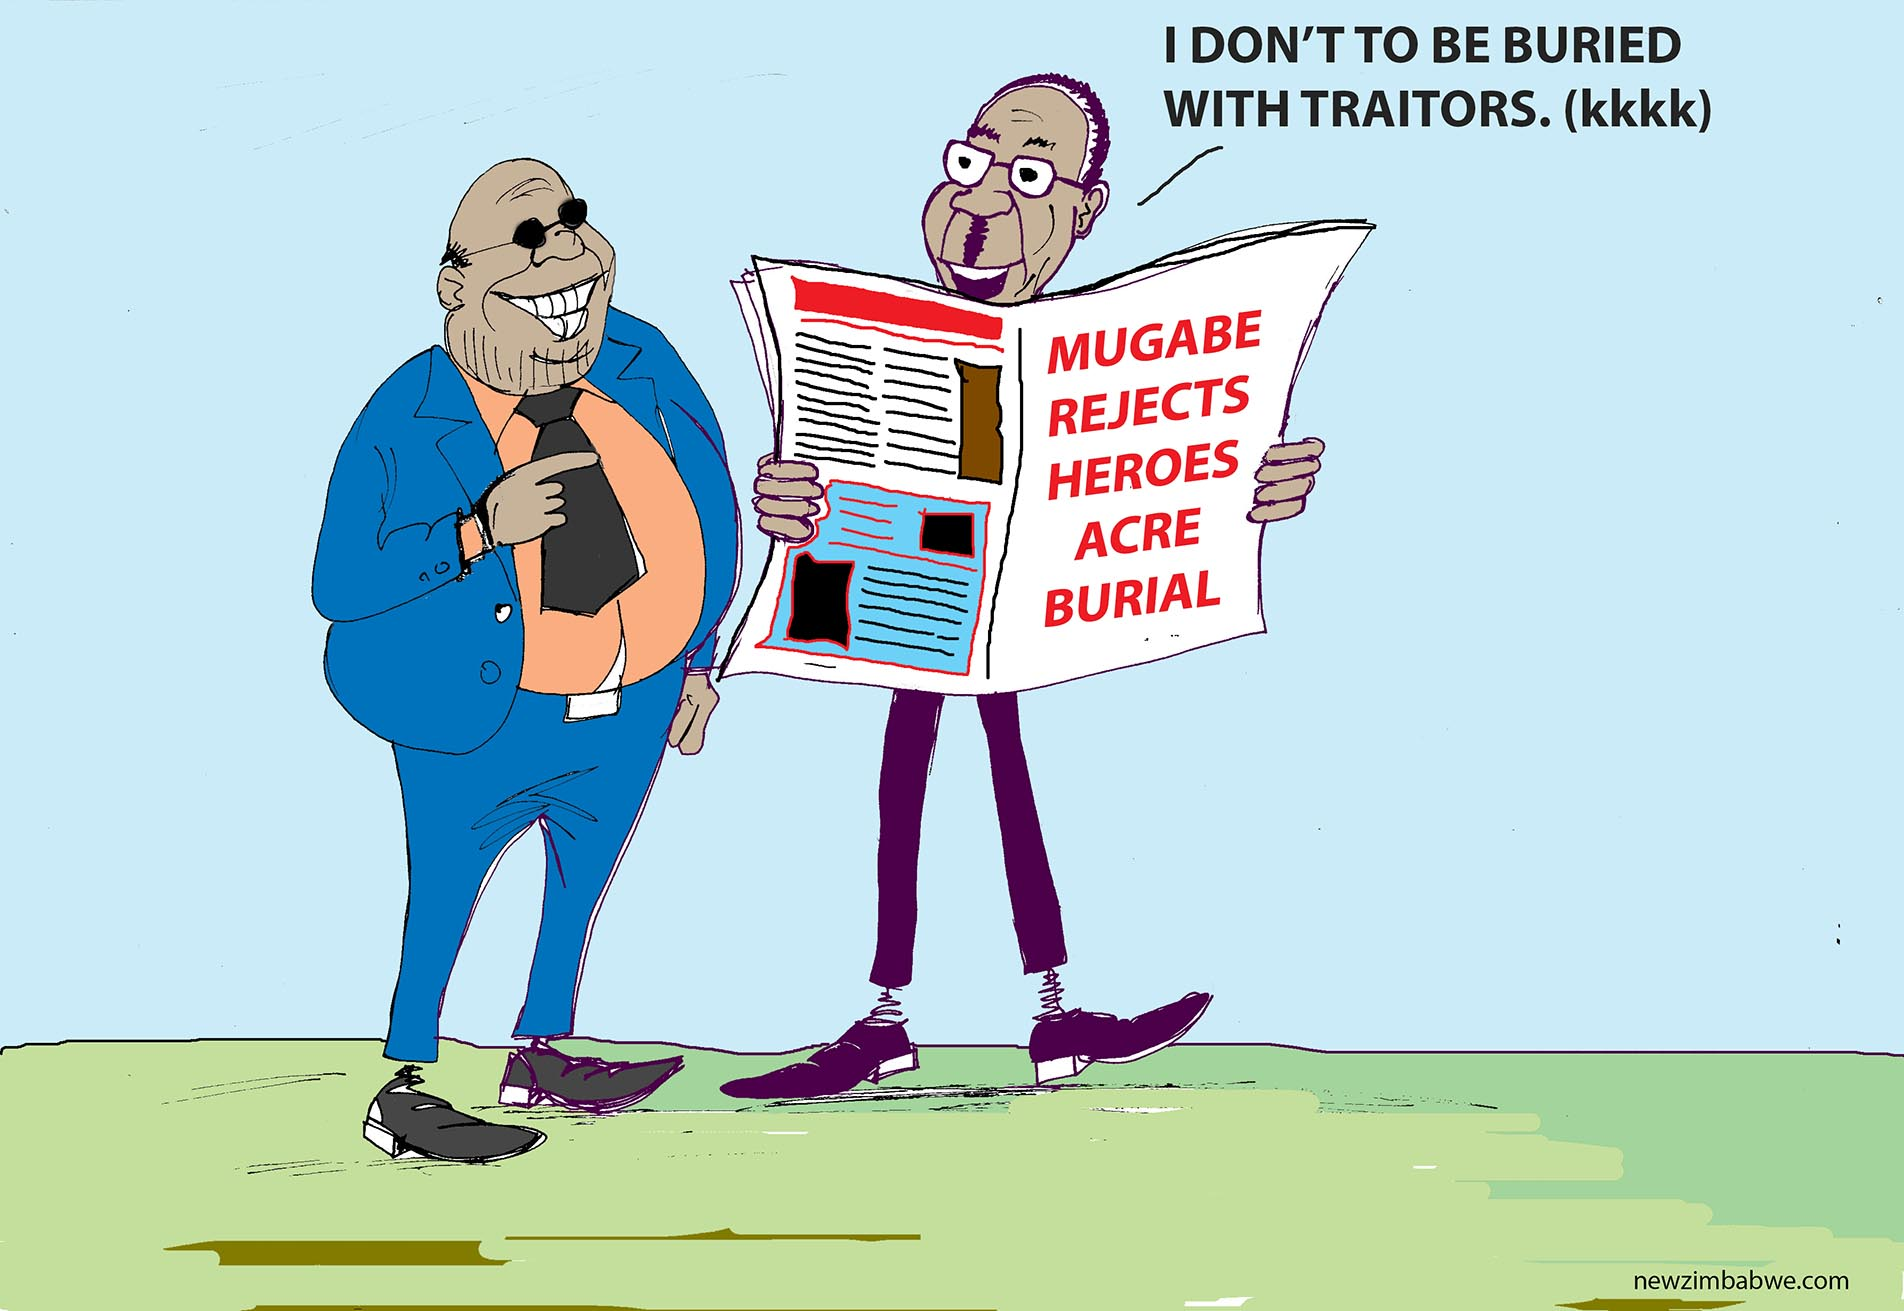 Mugabe rejects heroes acre